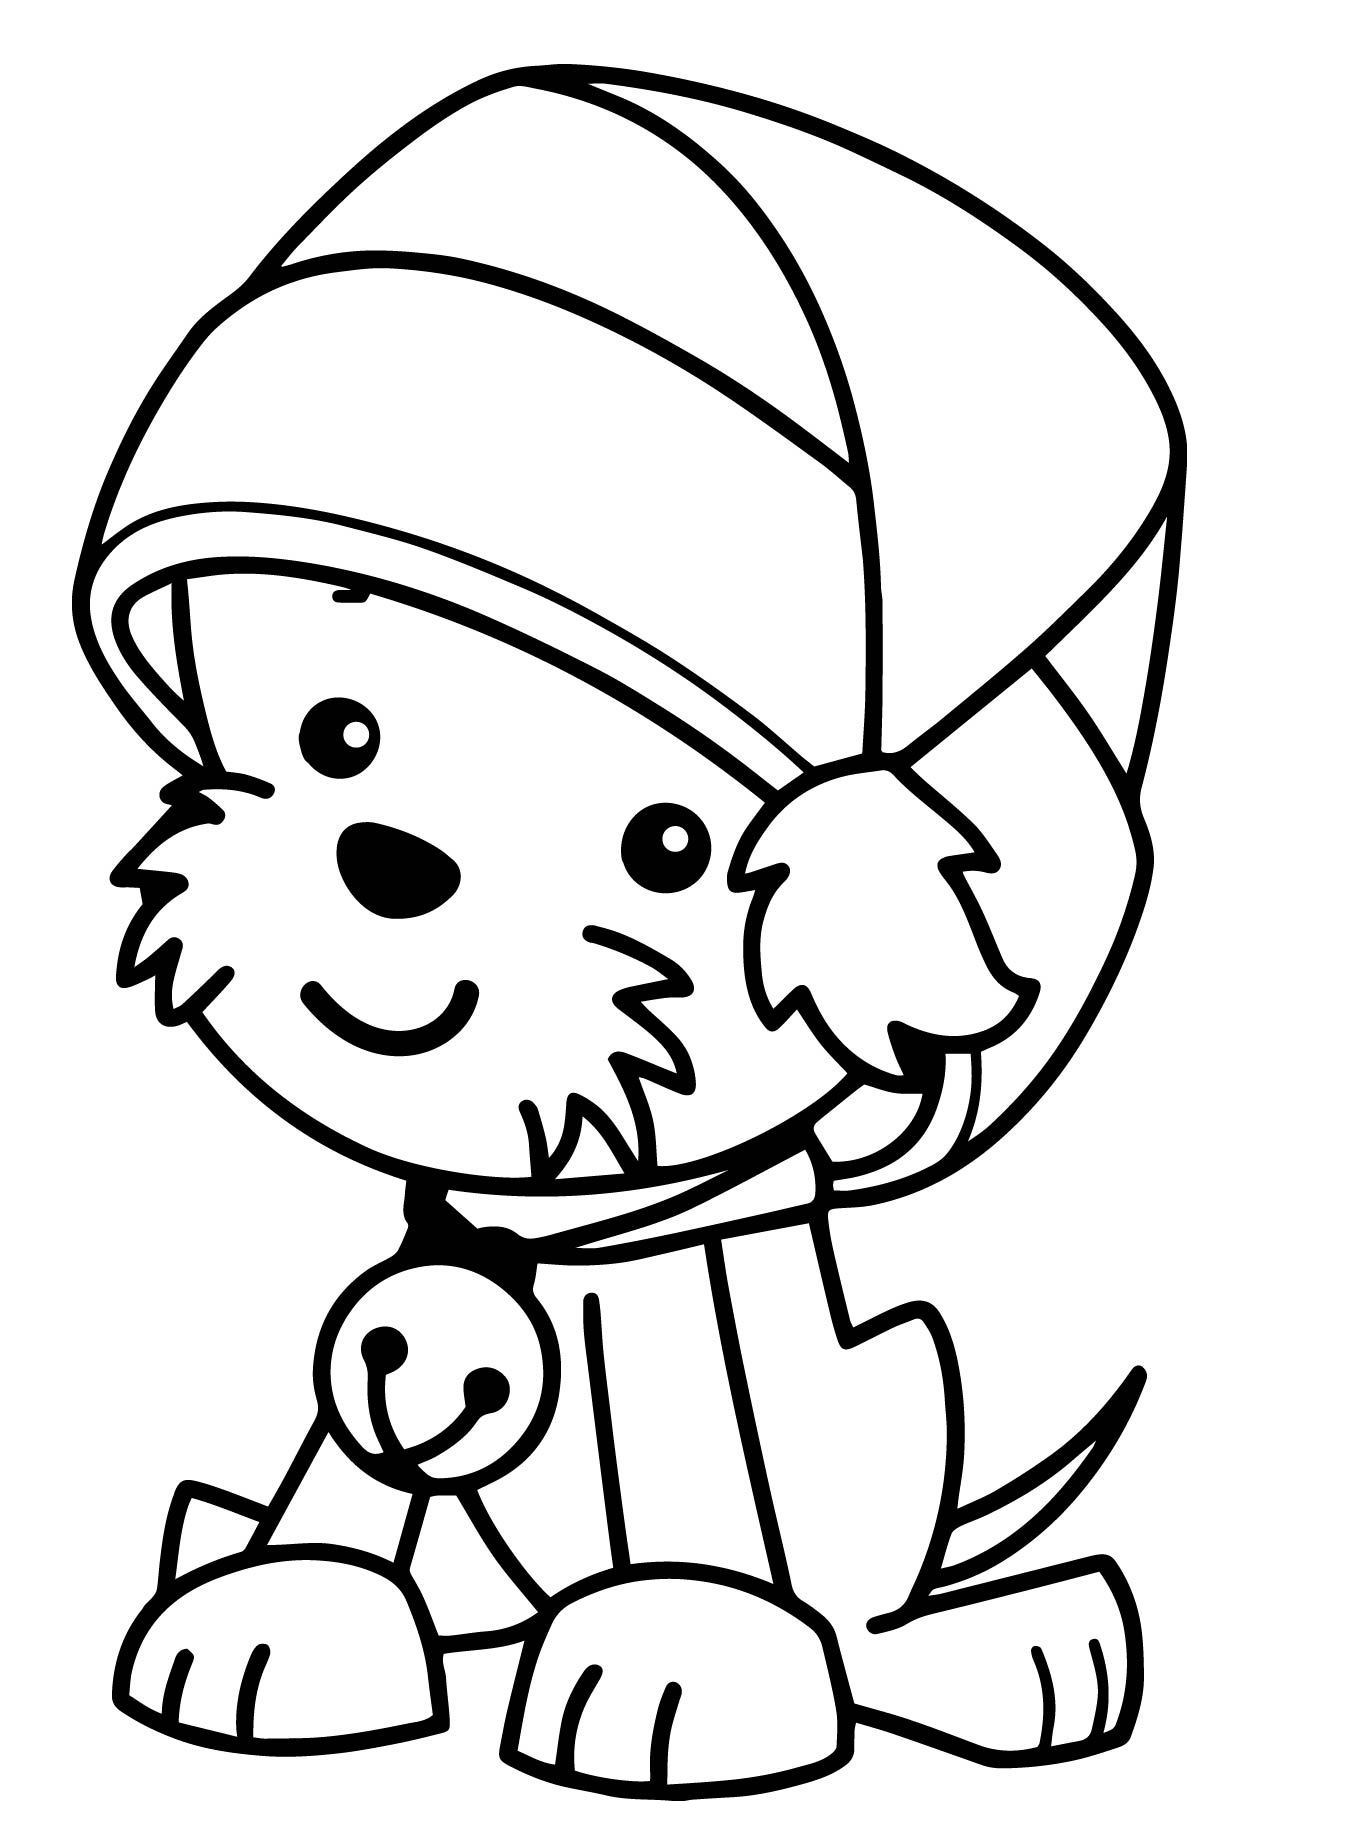 Printable Dog Wearing Christmas Hat Coloring Page For Both Aldults And Kids